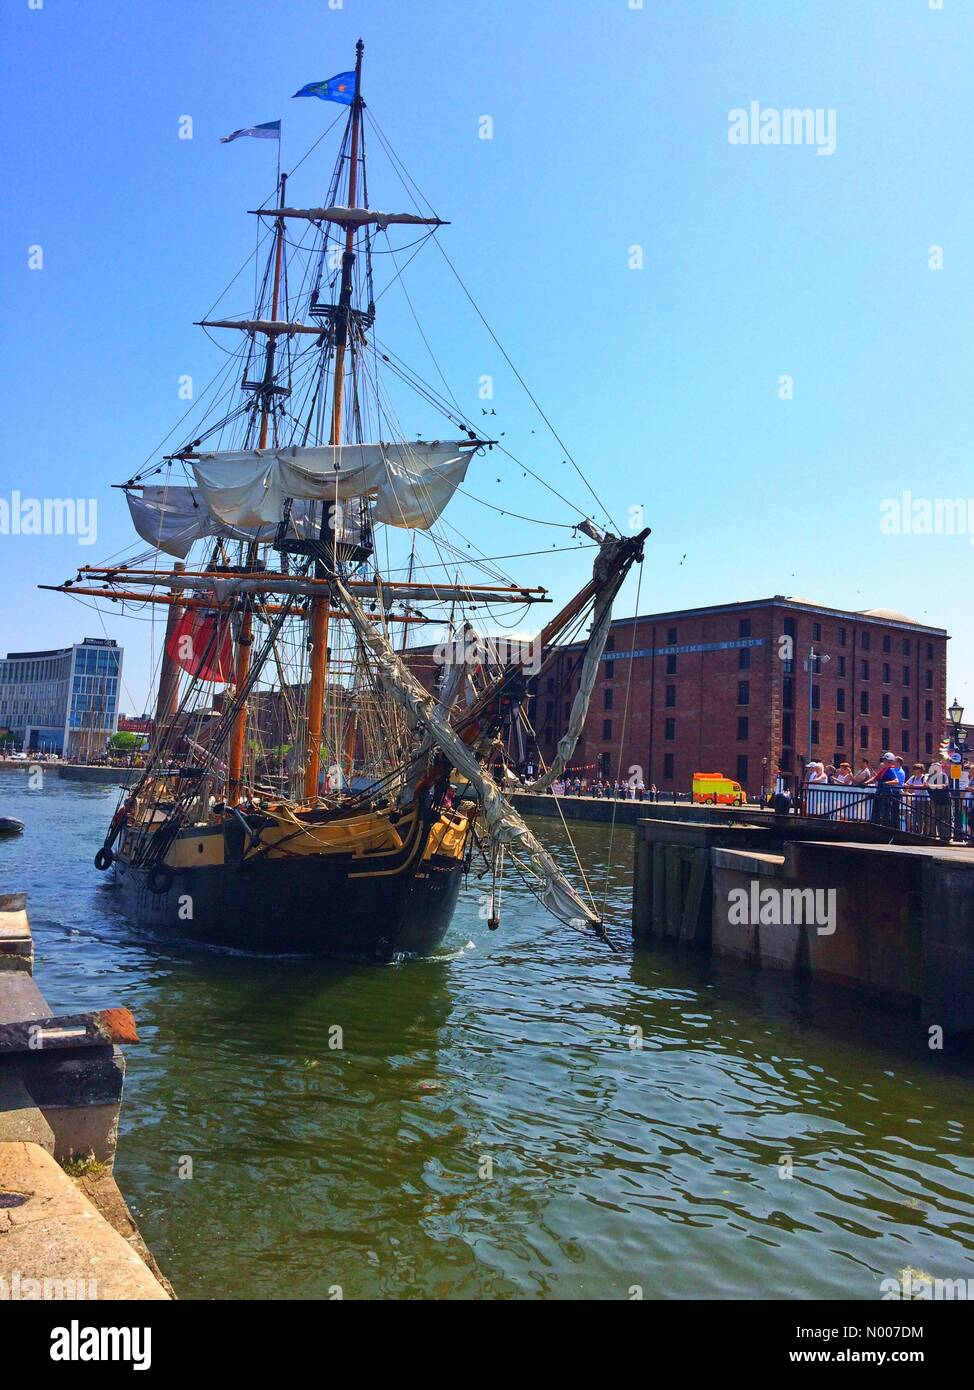 Liverpool, UK. 06th June, 2016. UK Weather, Sunshine in Liverpool, England UK. A tall ship leaves Liverpool's - Stock Image